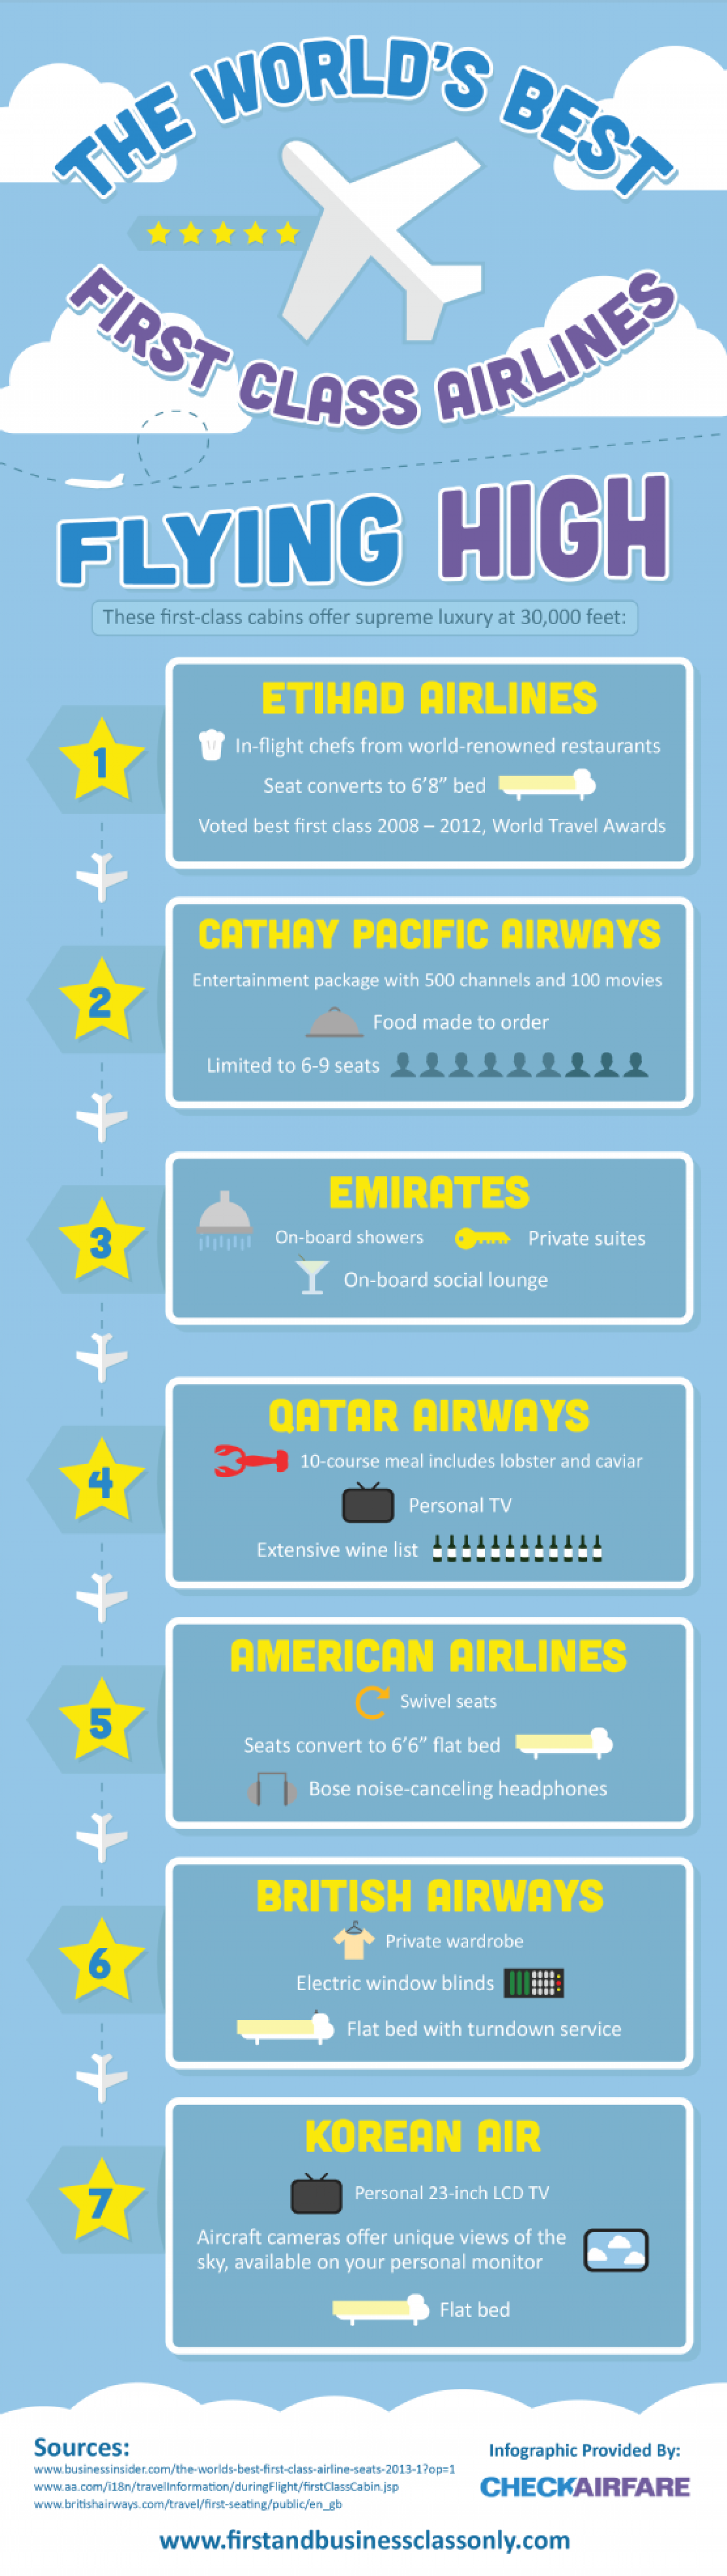 The World's Best First Class Airlines Infographic